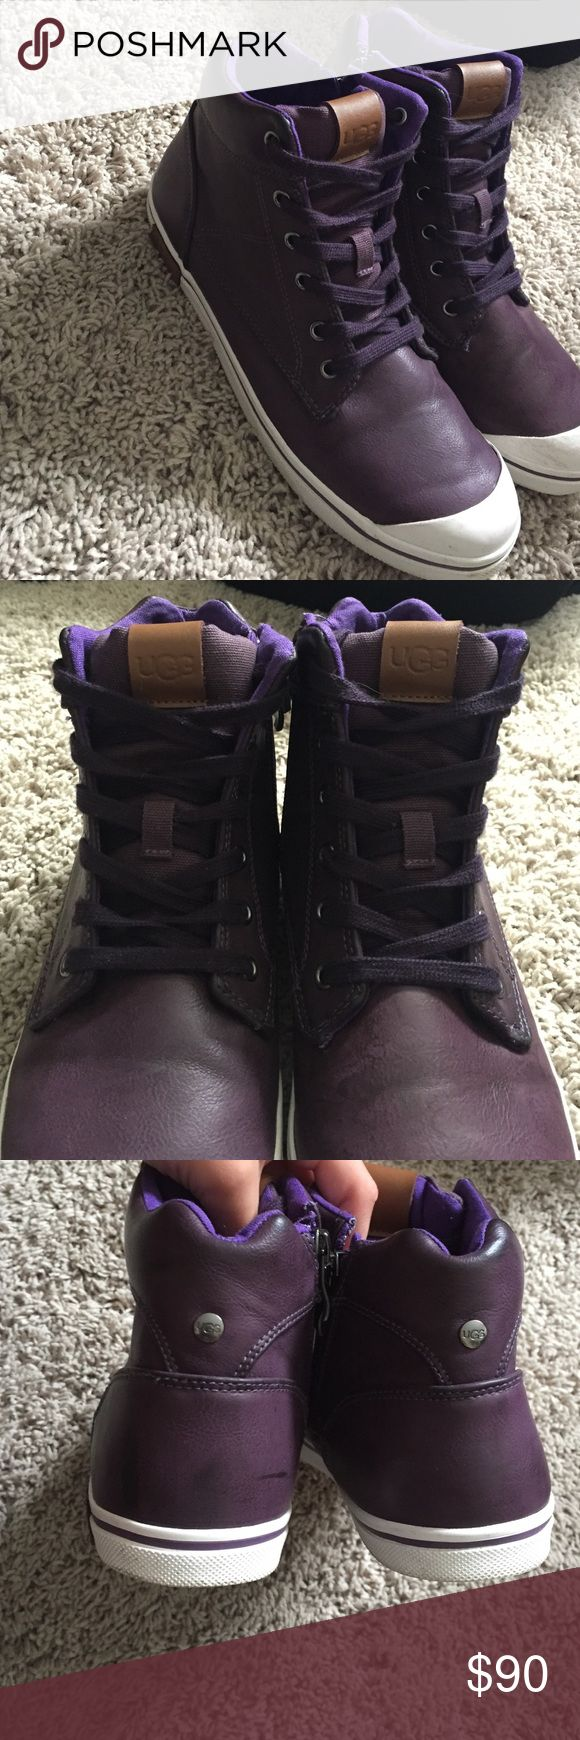 UGG sneakers UGG Australia sneakers. Purple leather. Worn once. UGG Shoes Sneakers